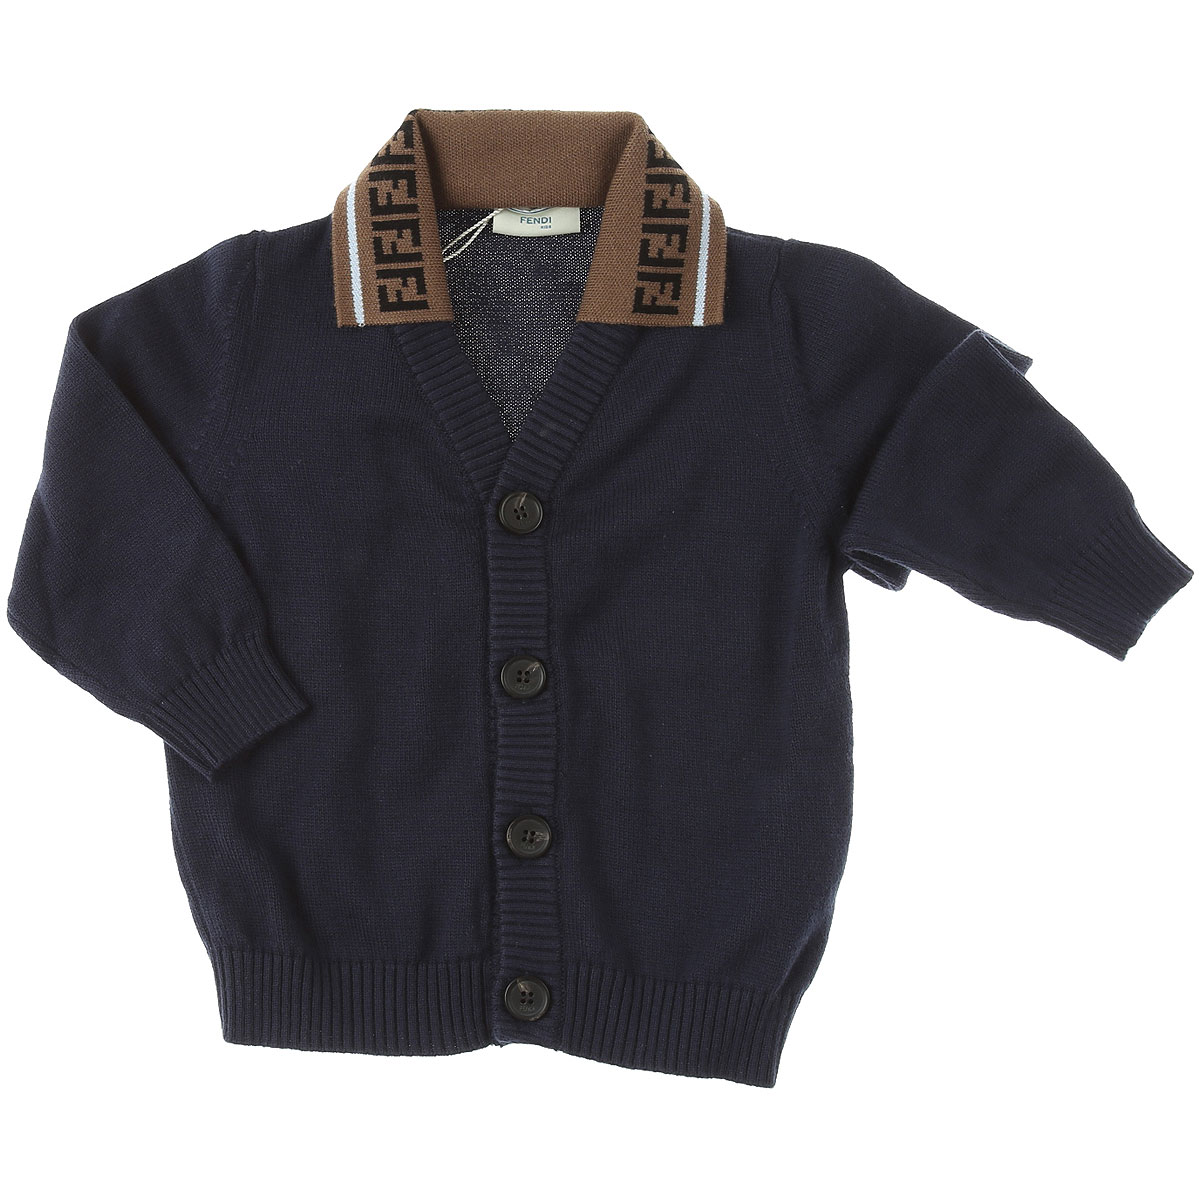 Fendi Baby Sweaters for Boys On Sale, navy, Cotton, 2019, 12 M 18M 2Y 6M